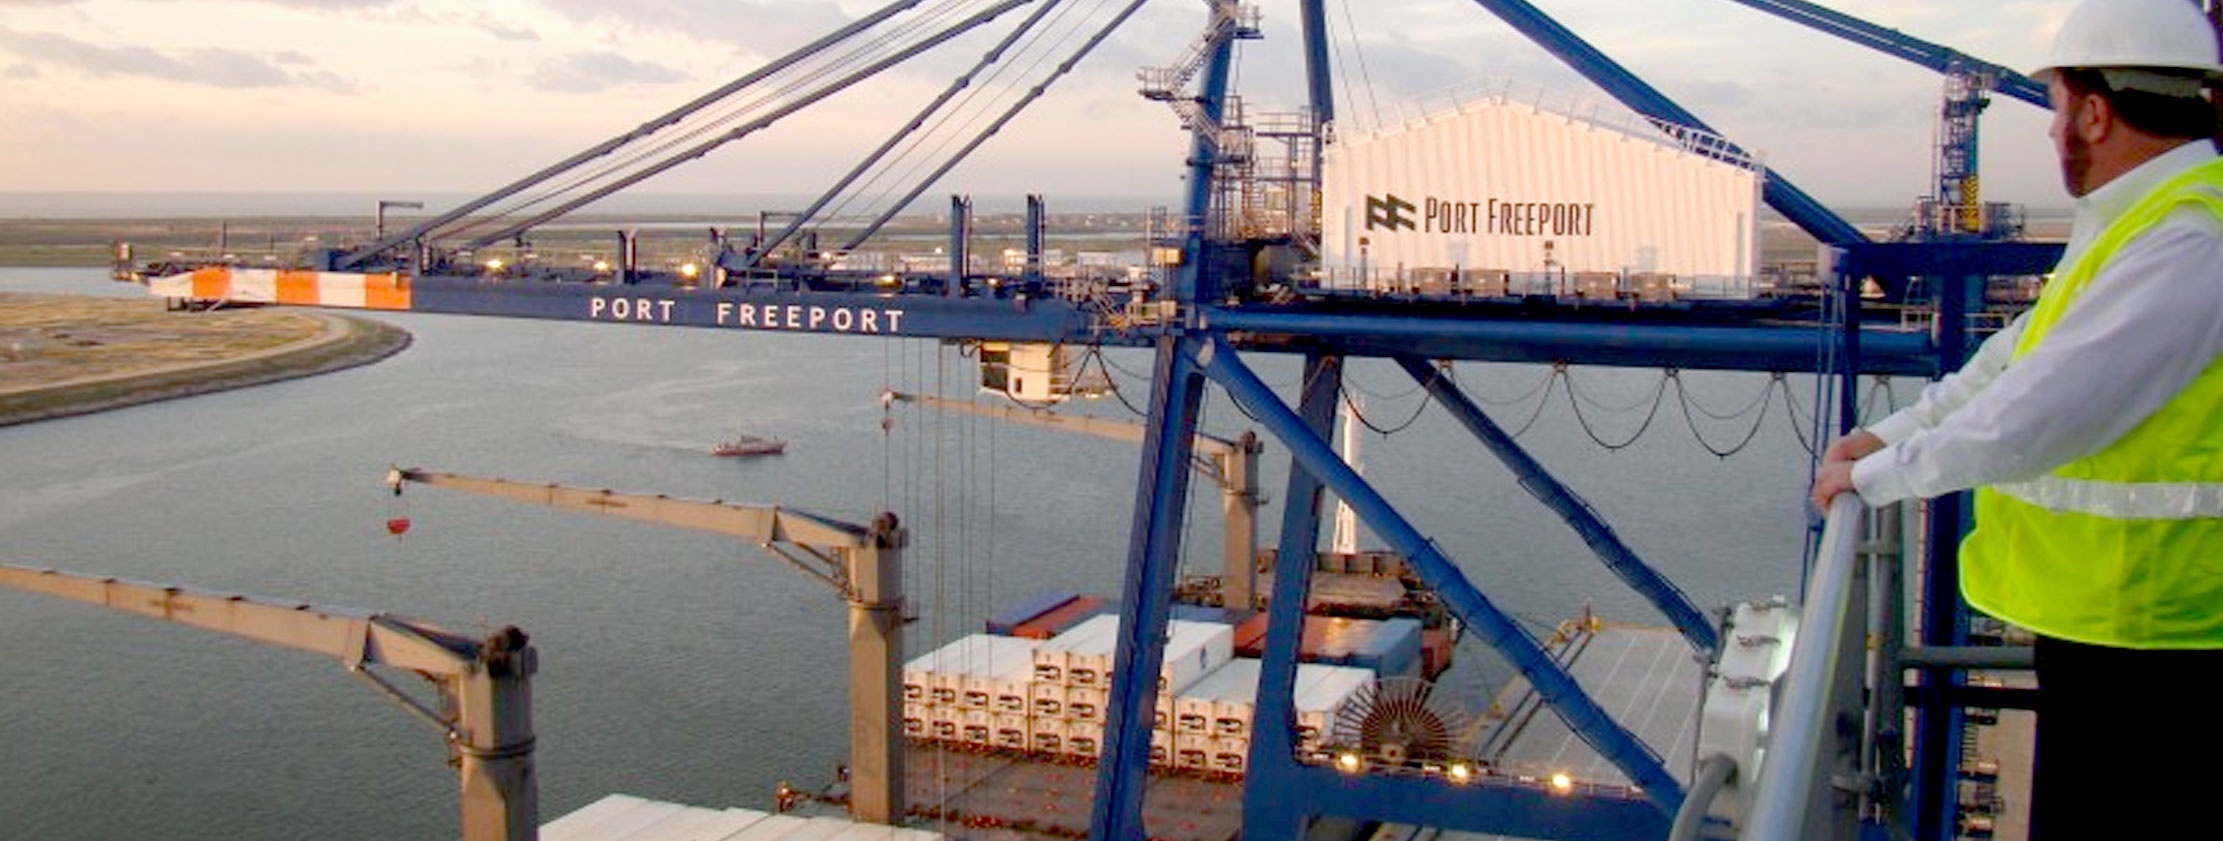 port freeport container operations in action